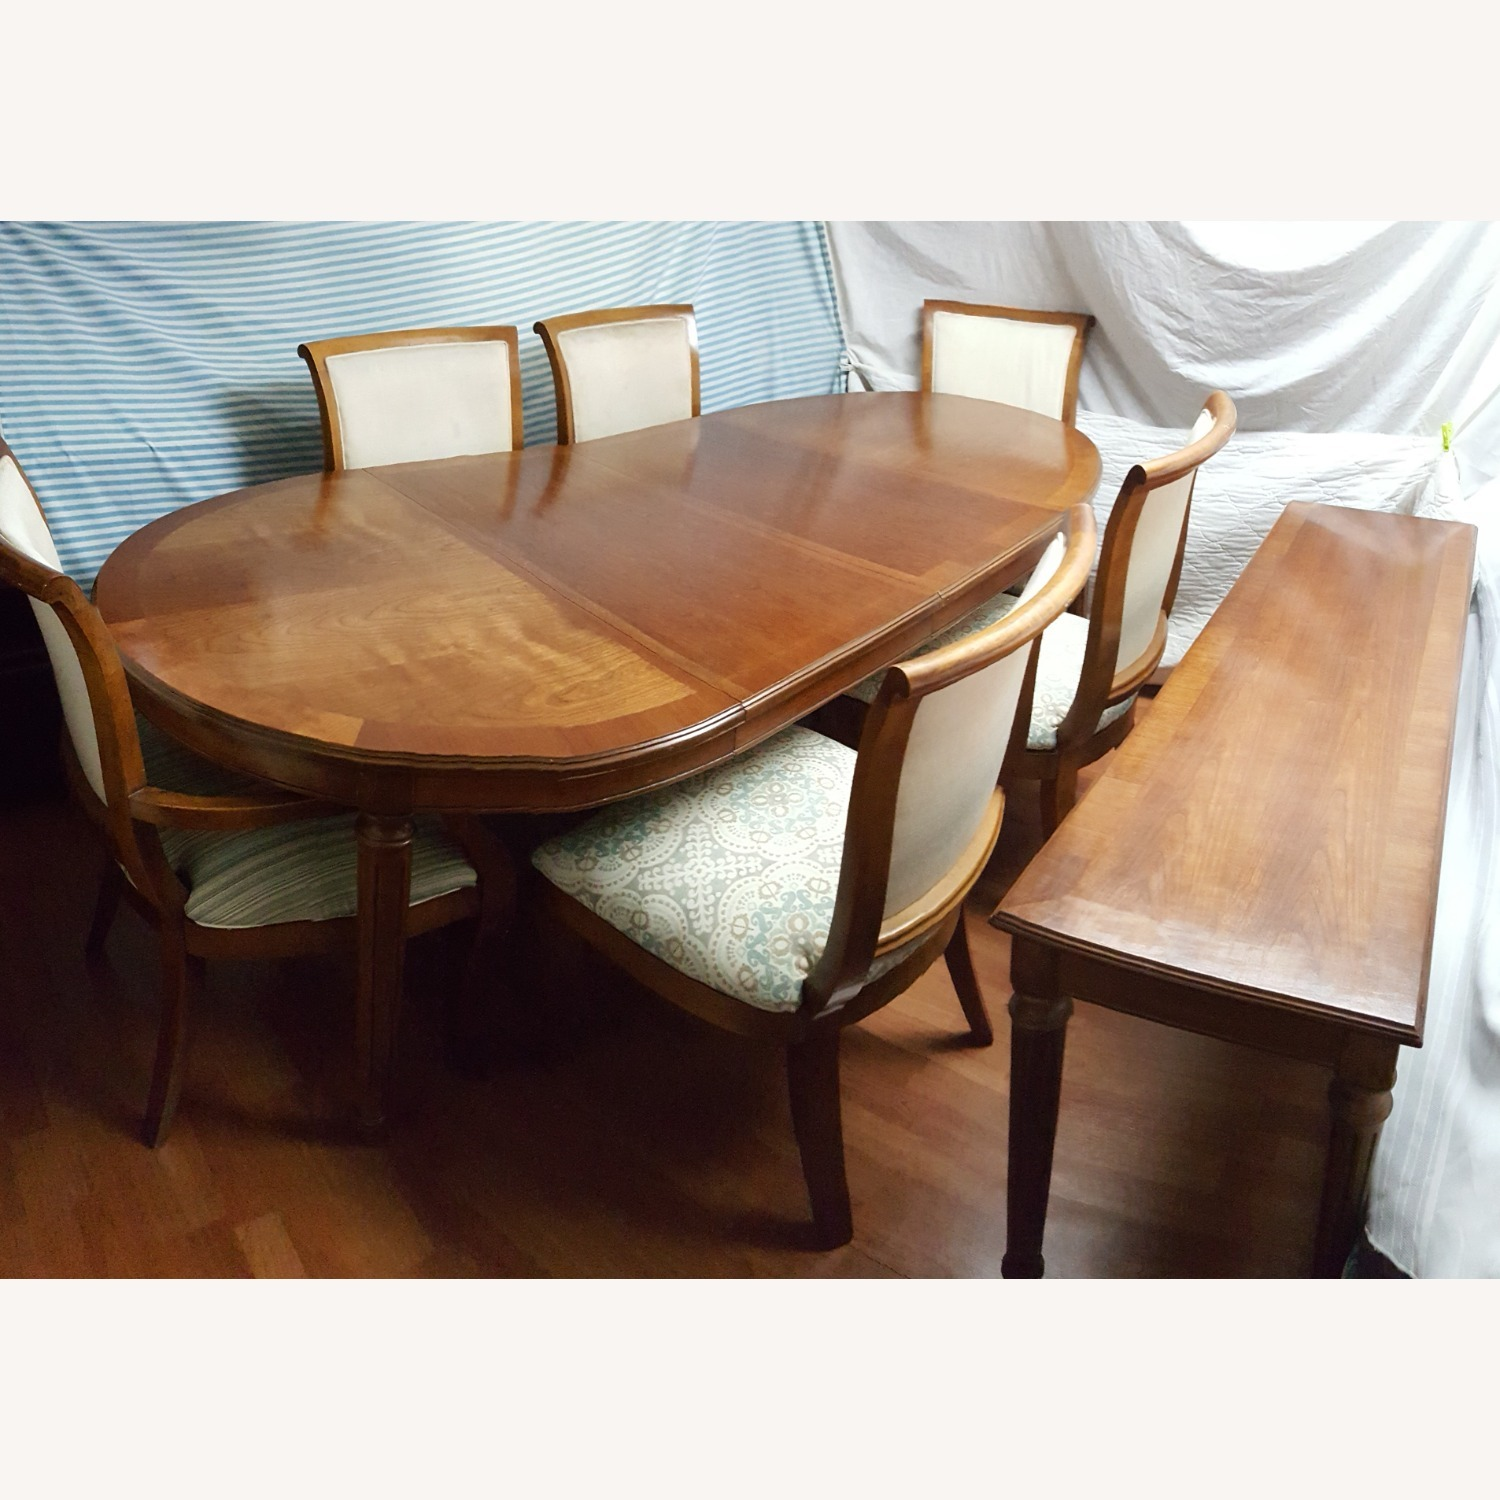 8pcs Oval Dining, Table With Removable Leaf, Set - image-2